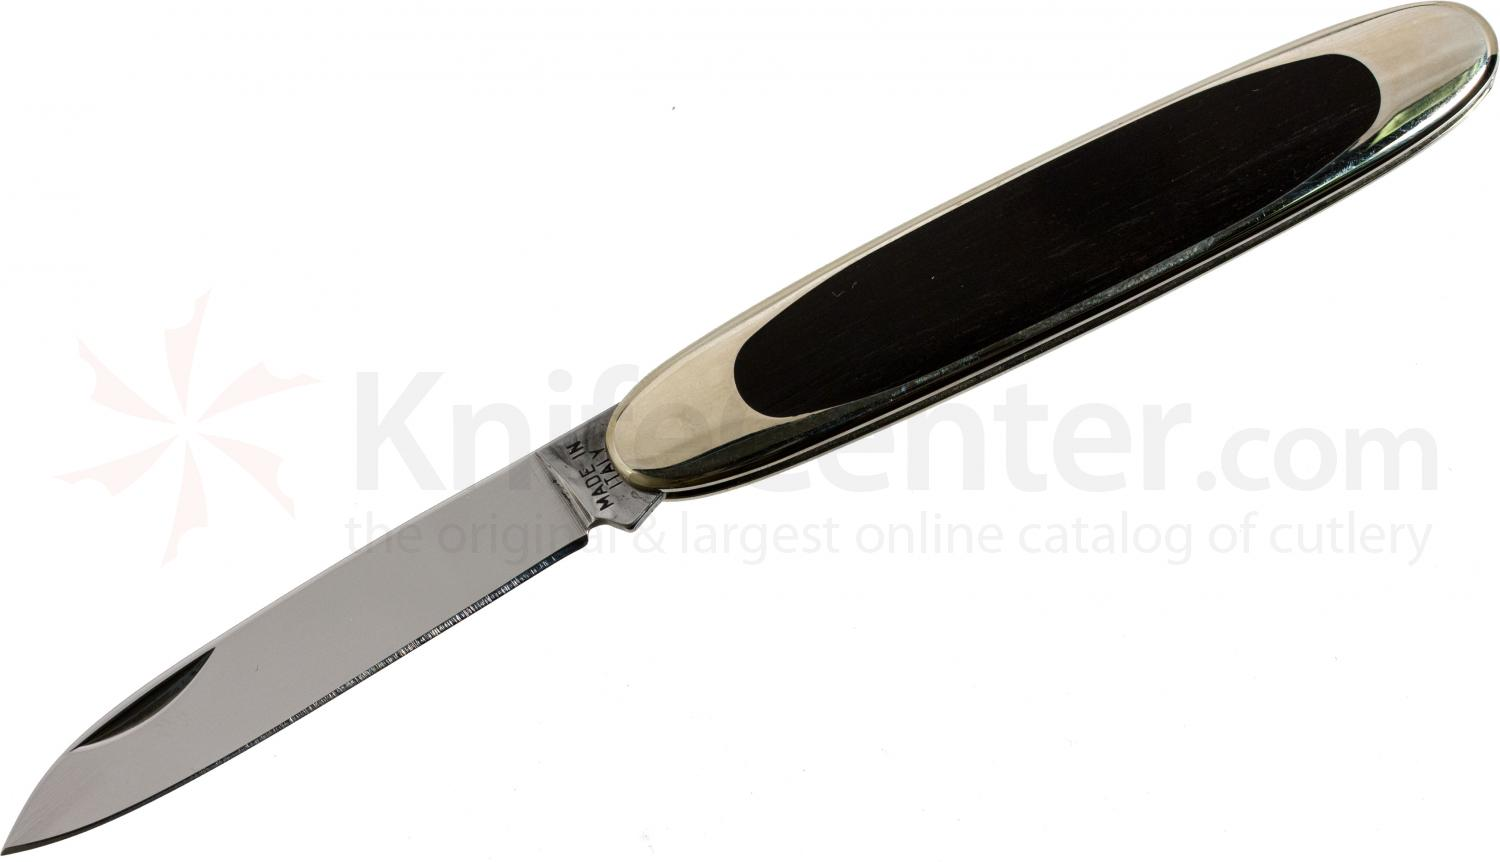 Maserin Temperini Line Classic Folding 2.56 inch Plain Pen Blade, Ebony Wood Scales